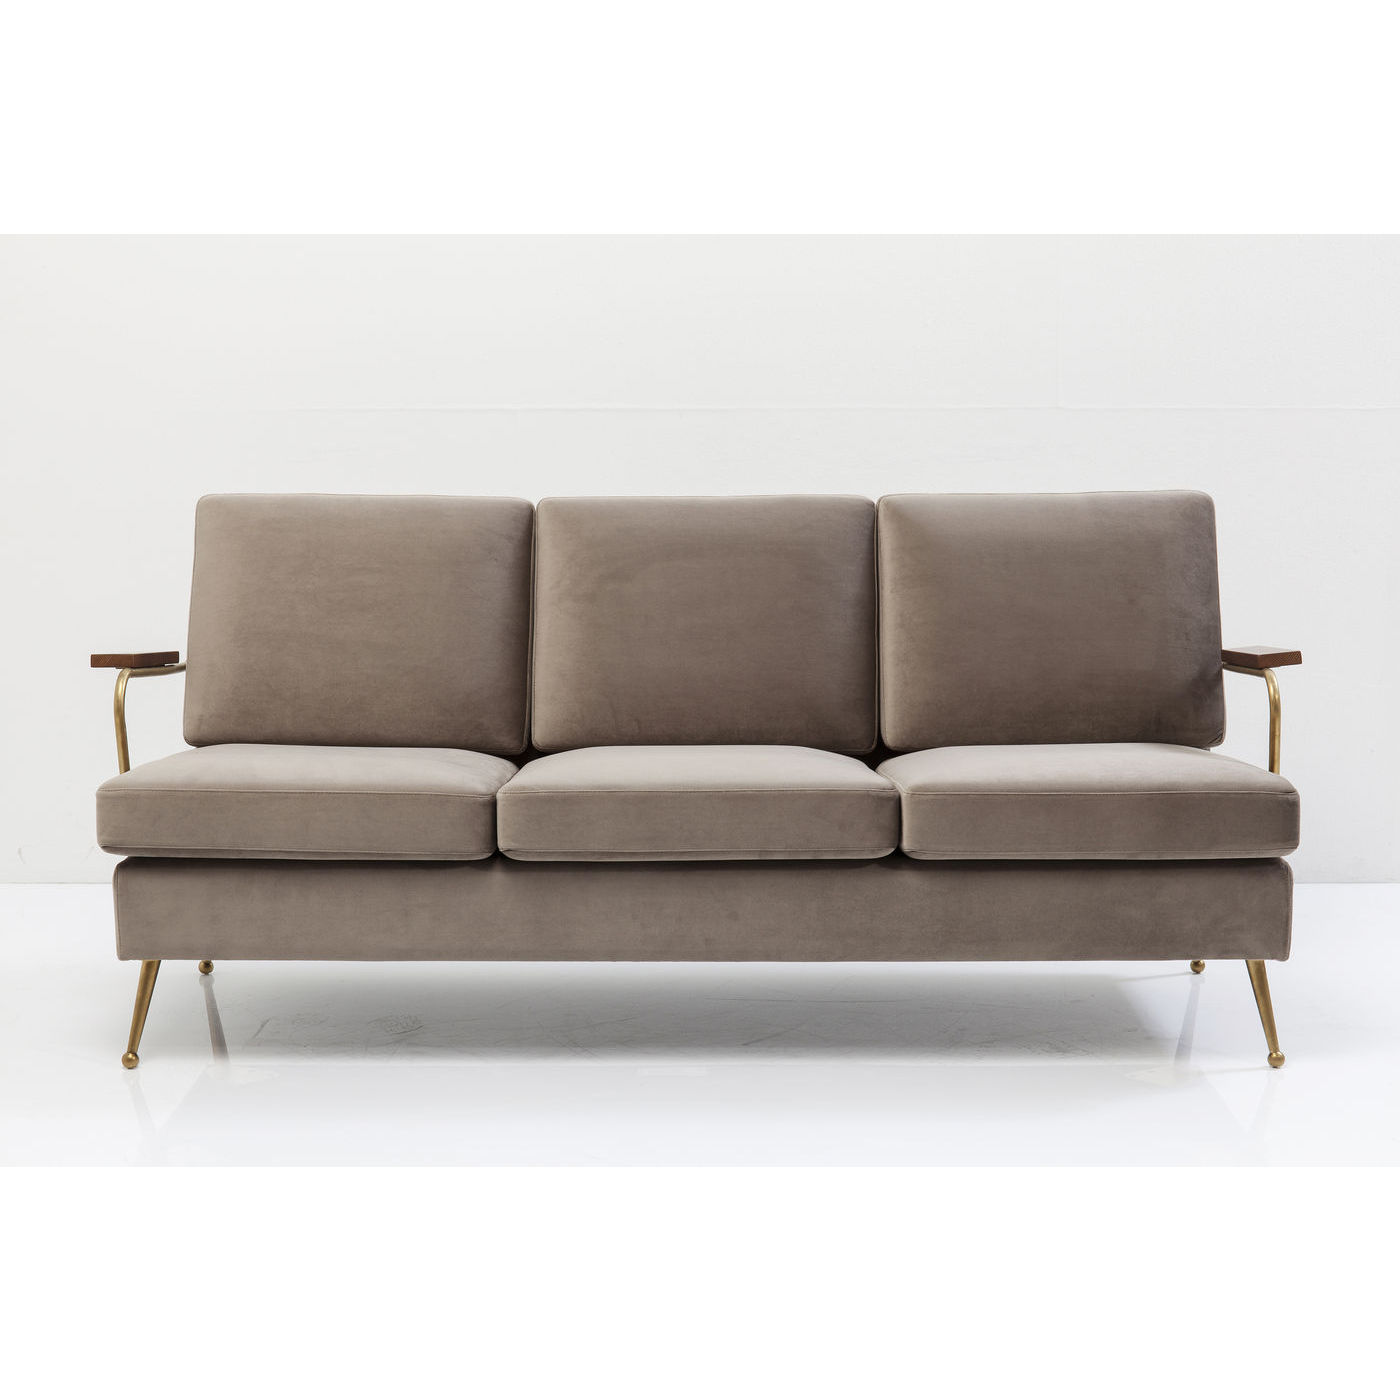 Image of   KARE DESIGN Gamble Sand 3-personers sofa - sand stof/messing stål, m. armlæn